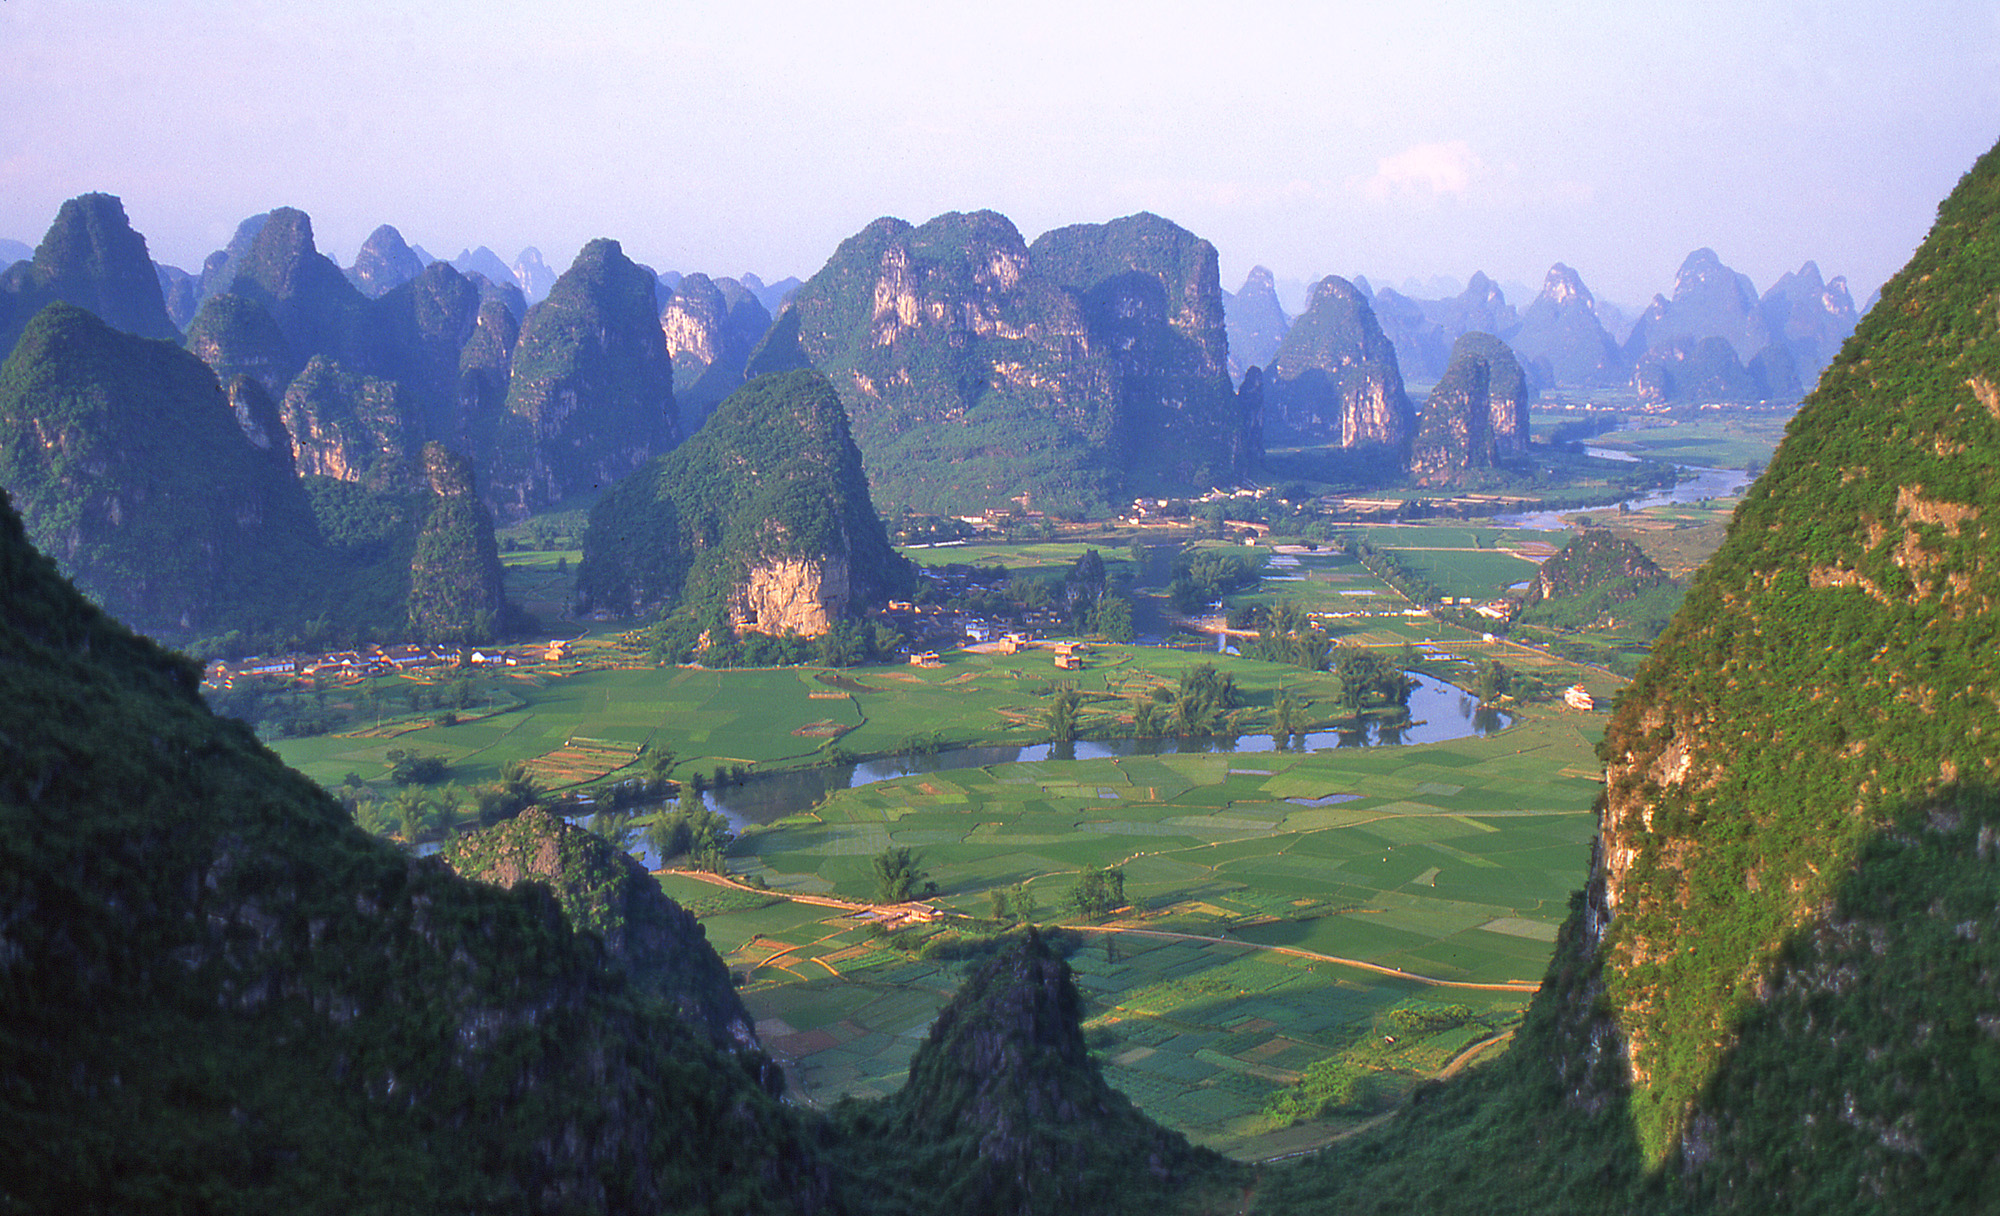 Guilin China  City pictures : ... guilin china price contact travel advisor contact advisor guilin is a